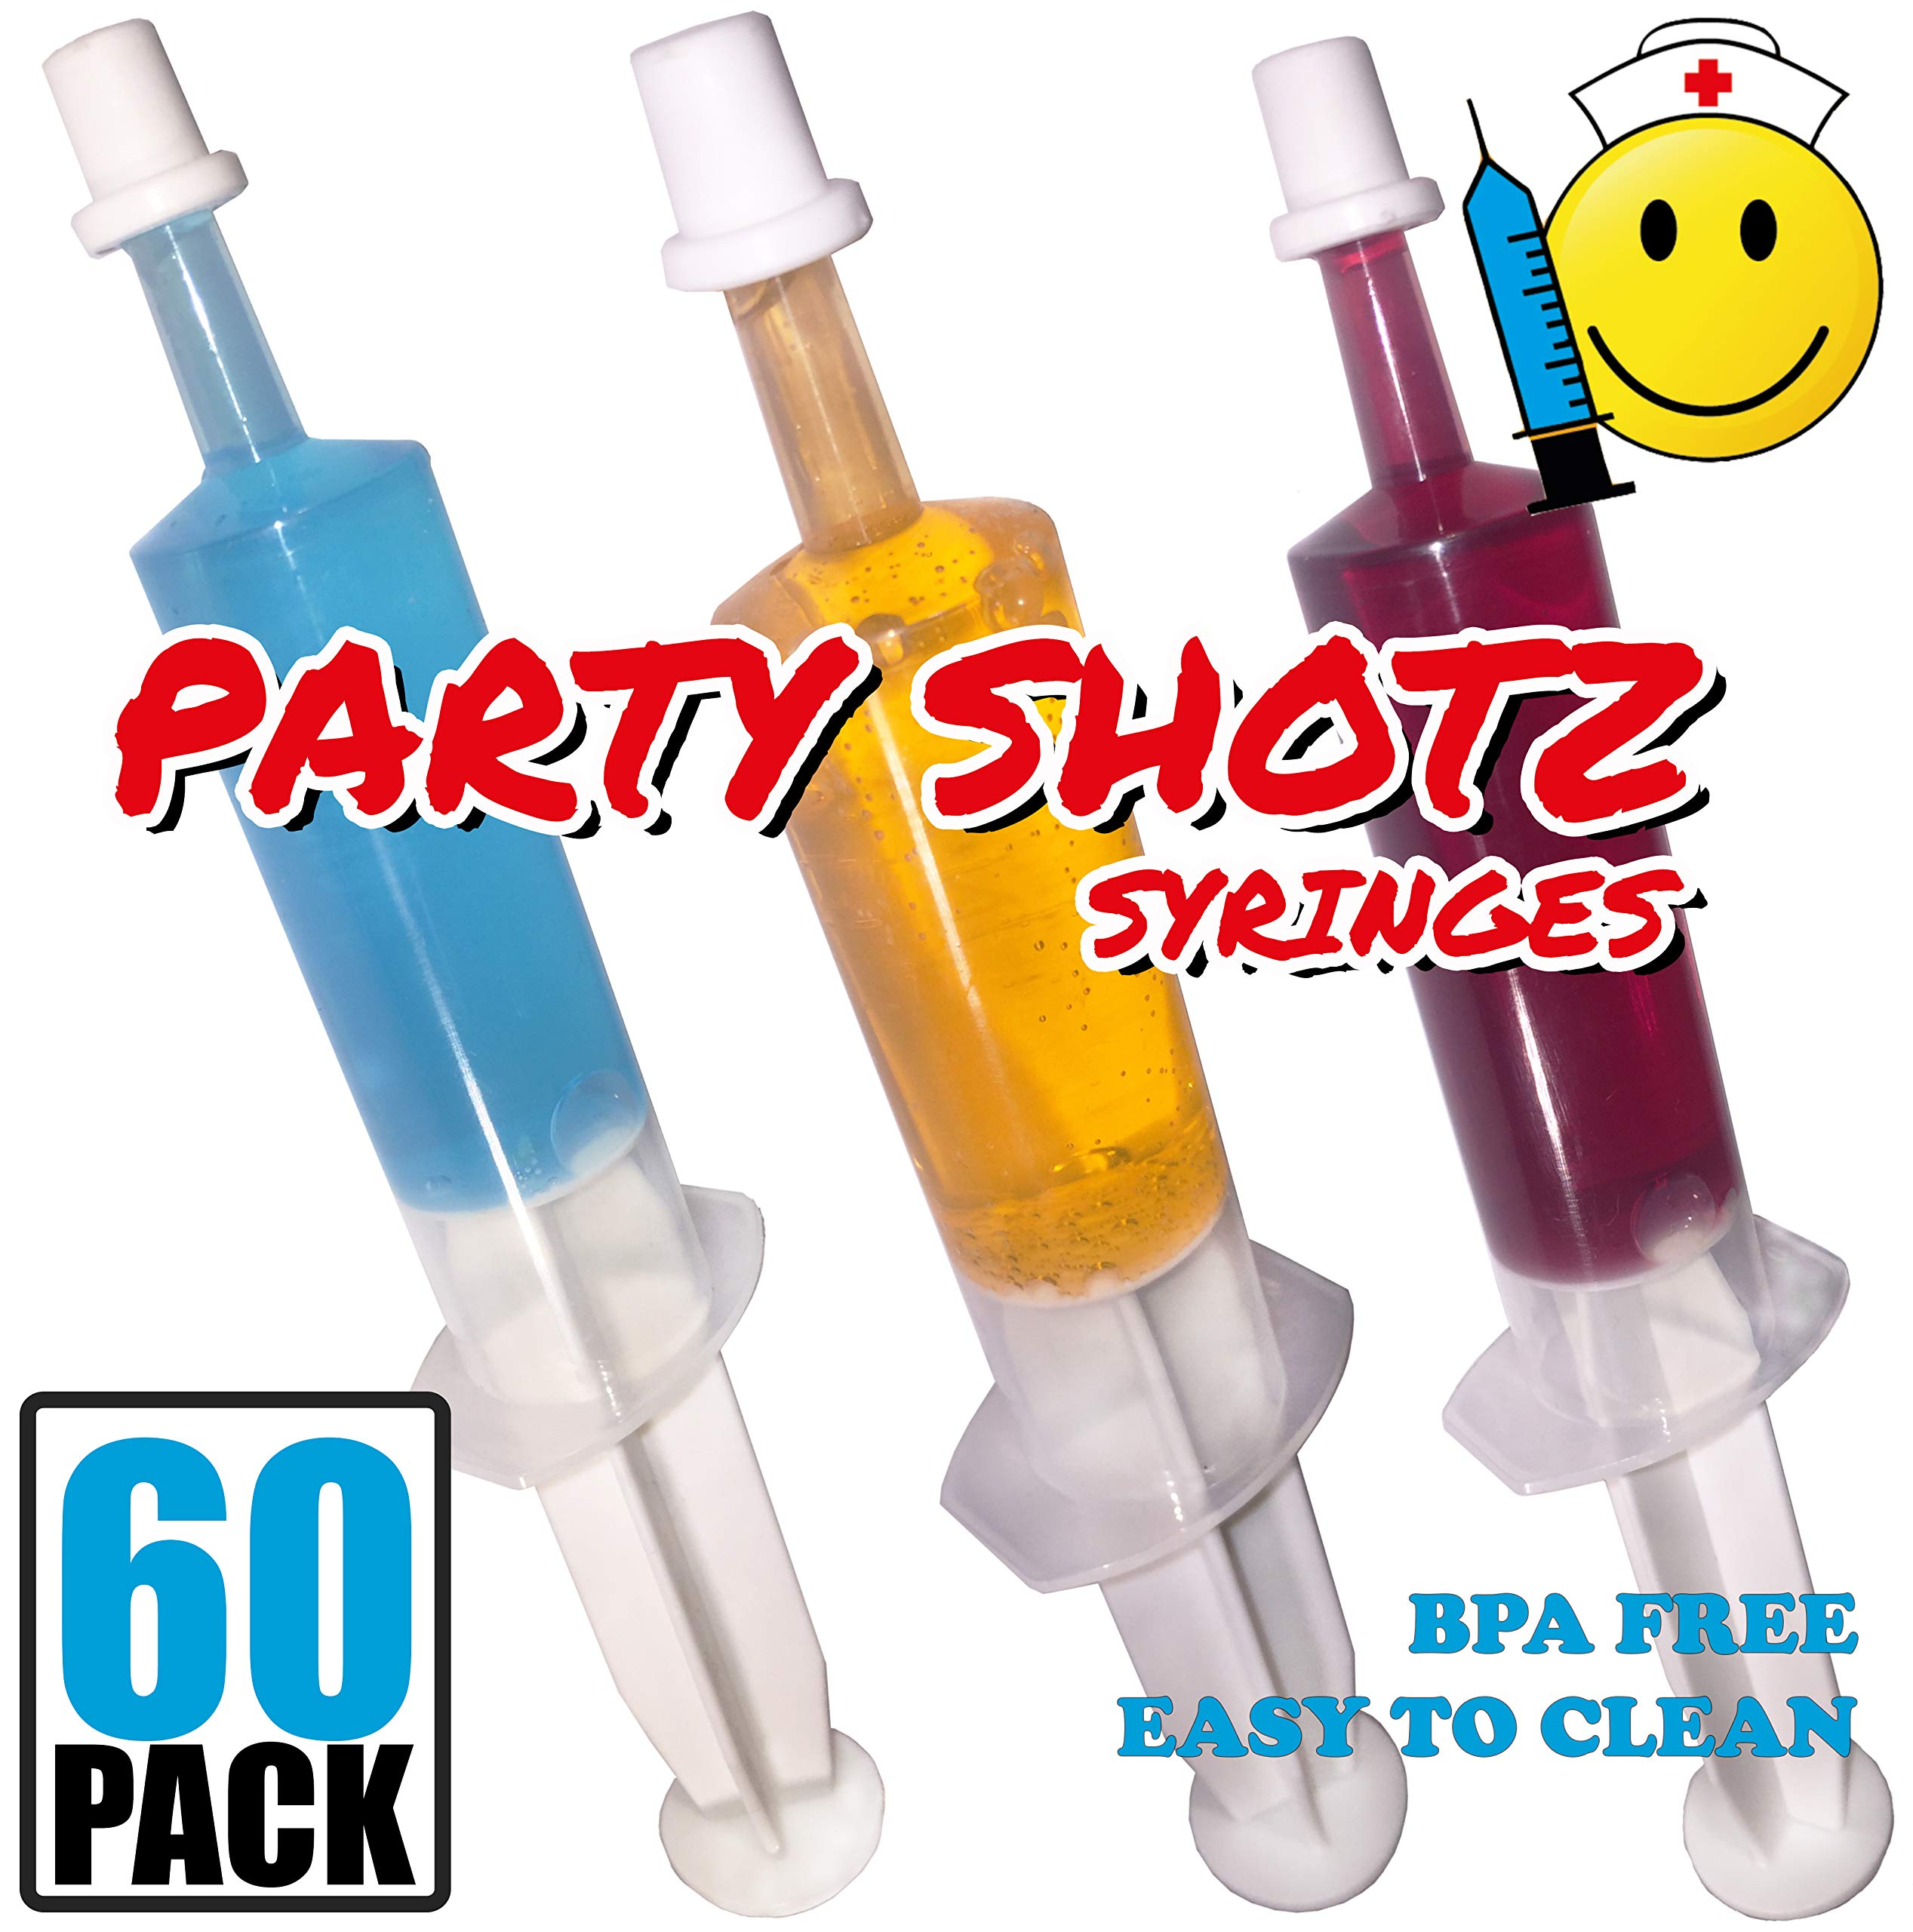 60 Pack Party Shotz Jello Shot Syringes (Medium 1.5oz with CAPS) by Party Shotz